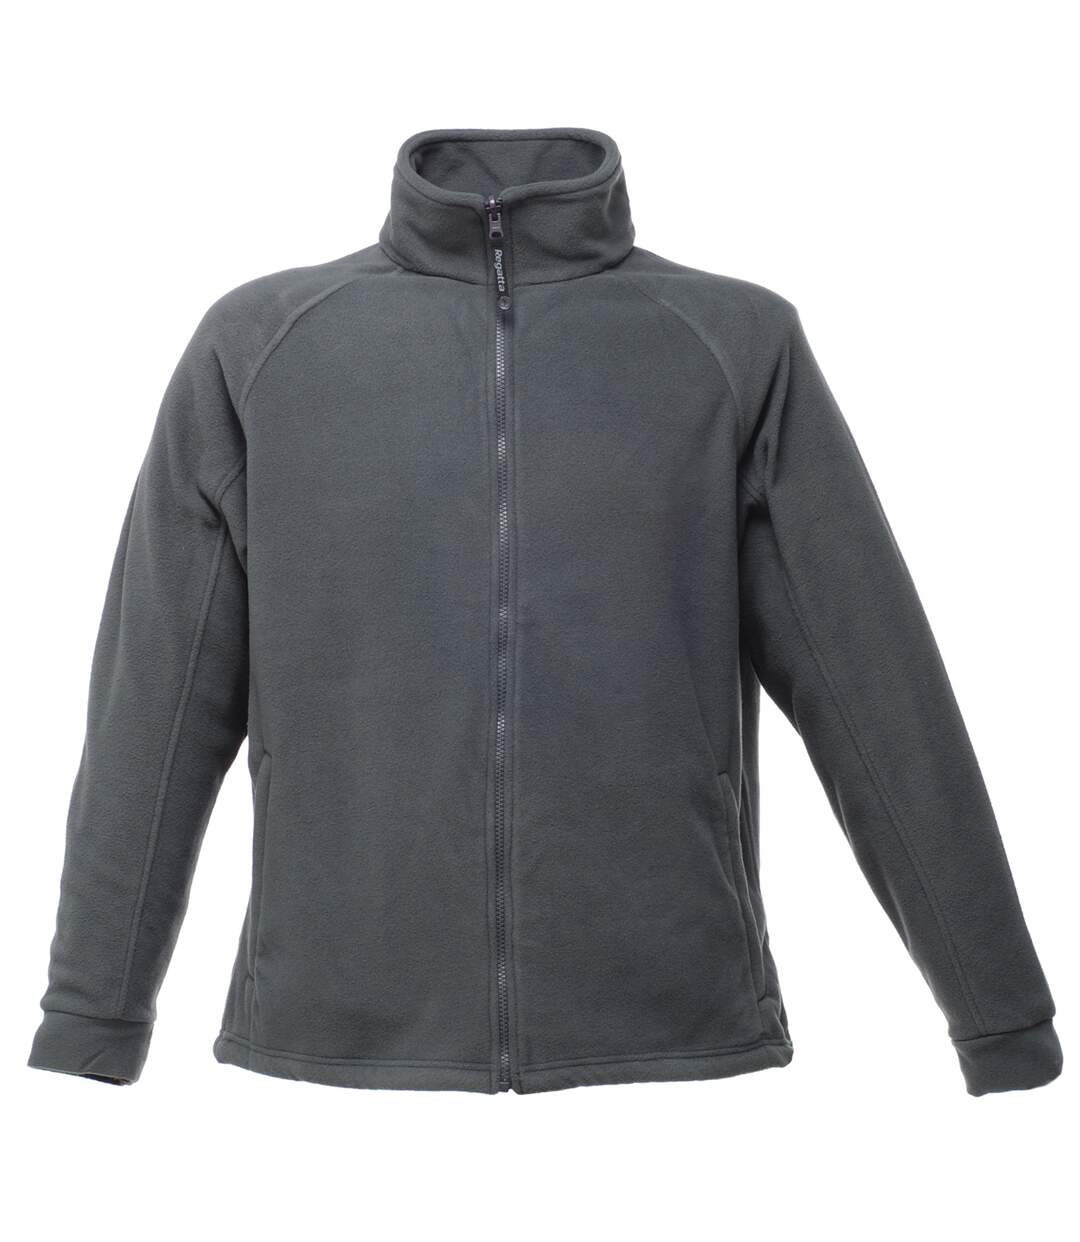 Regatta Mens Thor III Anti-Pill Fleece Jacket (Black) - UTRW1198